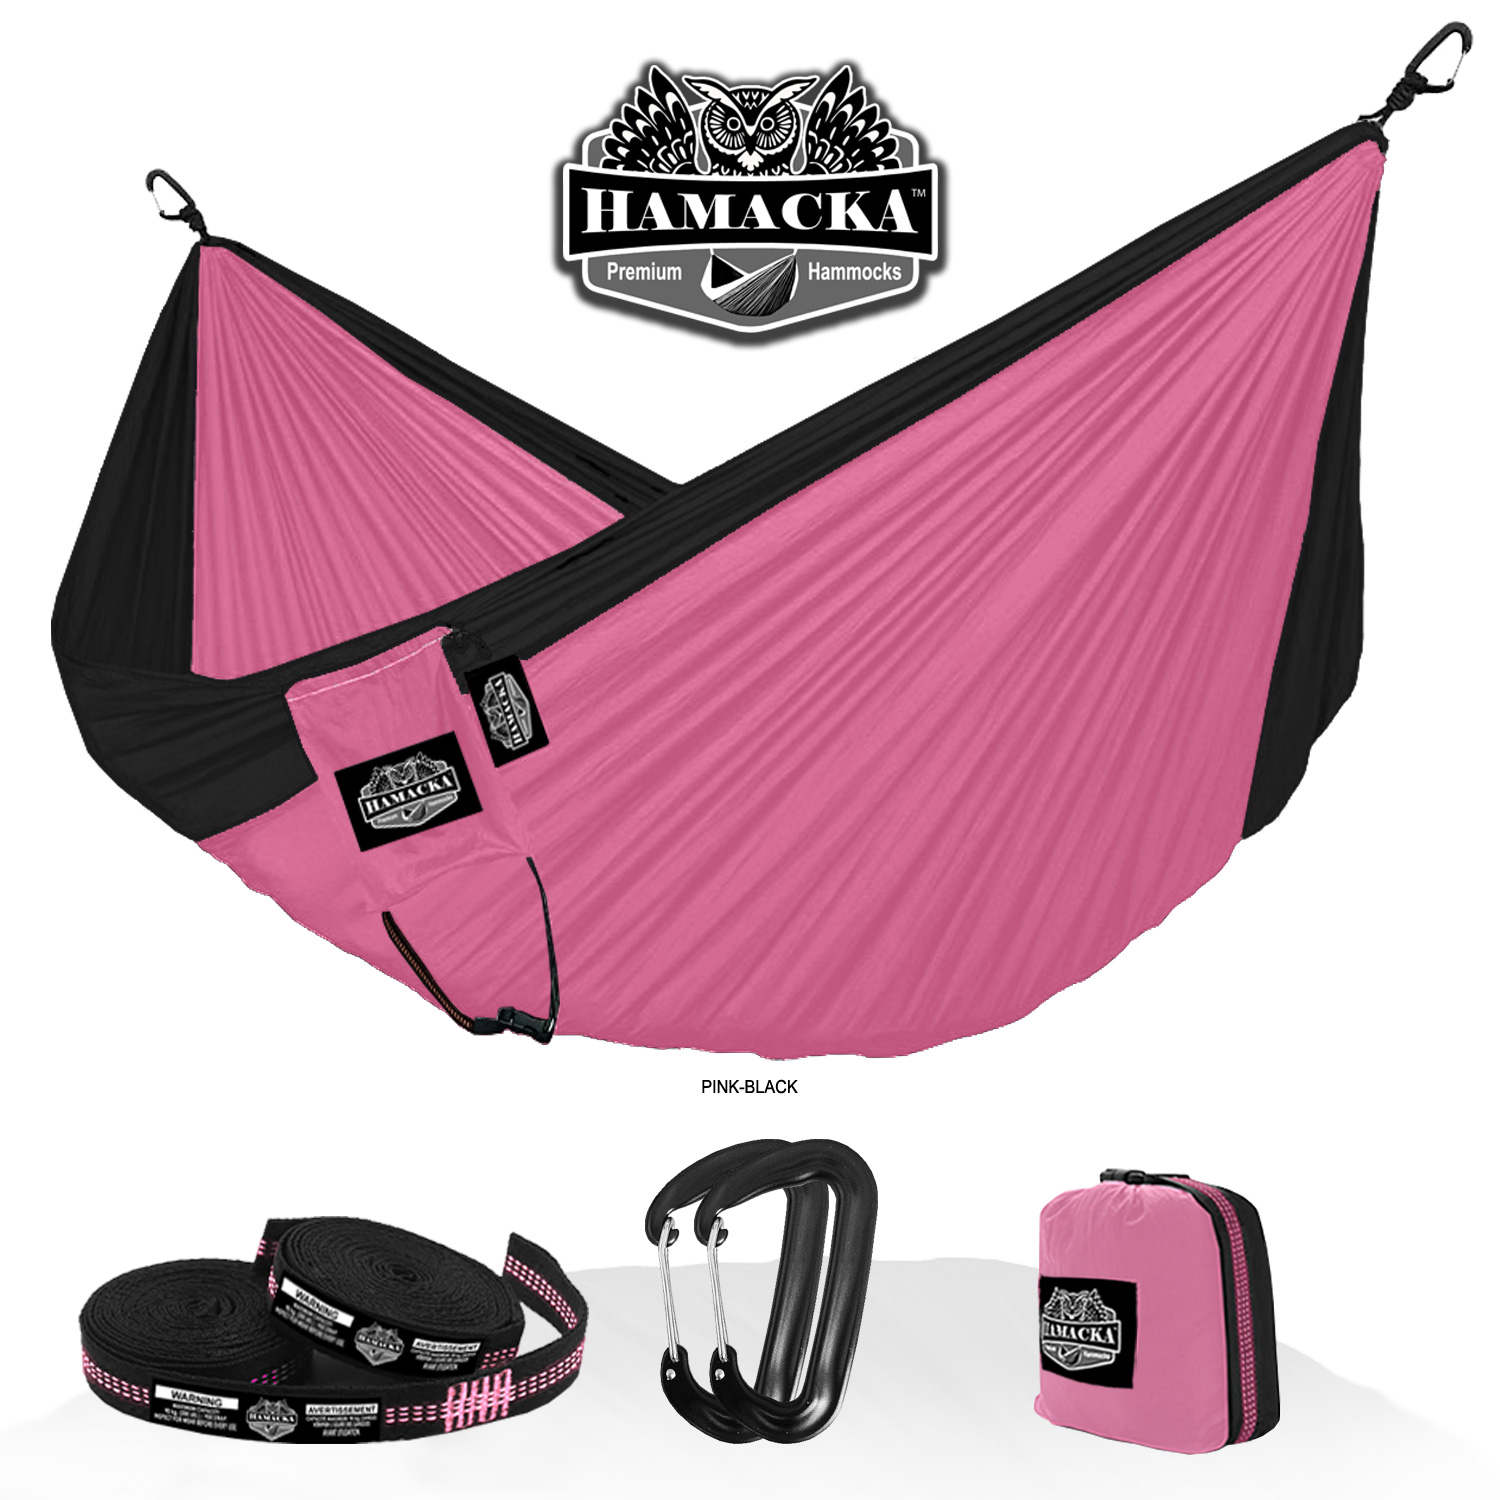 TRAVEL HAMMOCK SET (PINK)